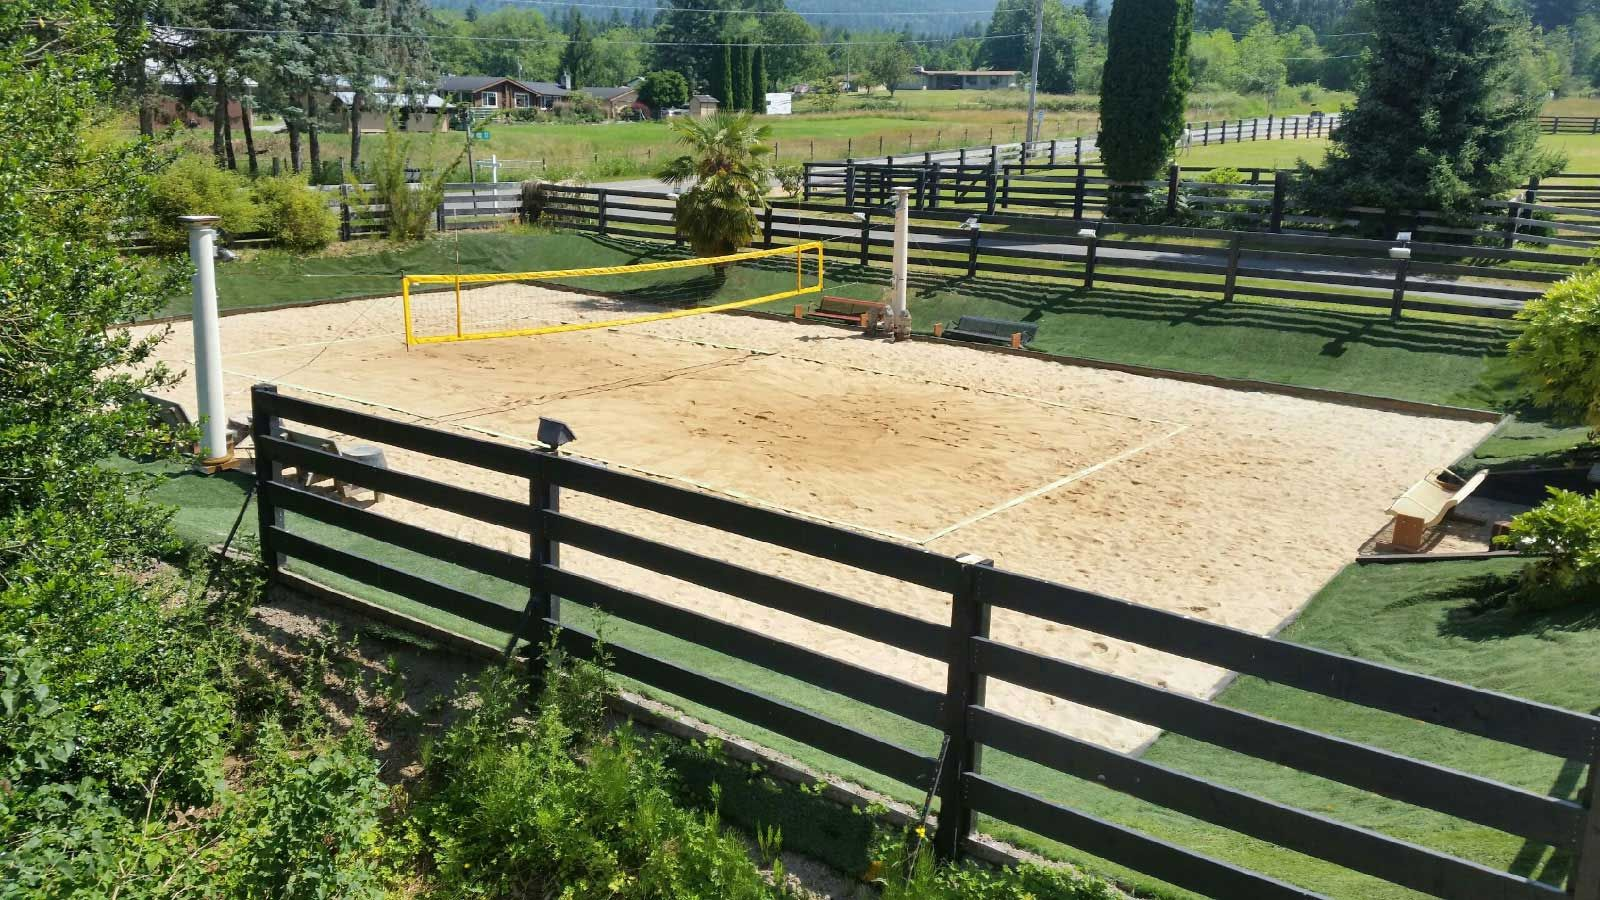 How To Construct A Volleyball Court Volleyballusa Com In 2020 Volleyball Court Backyard Backyard Diy Projects Backyard